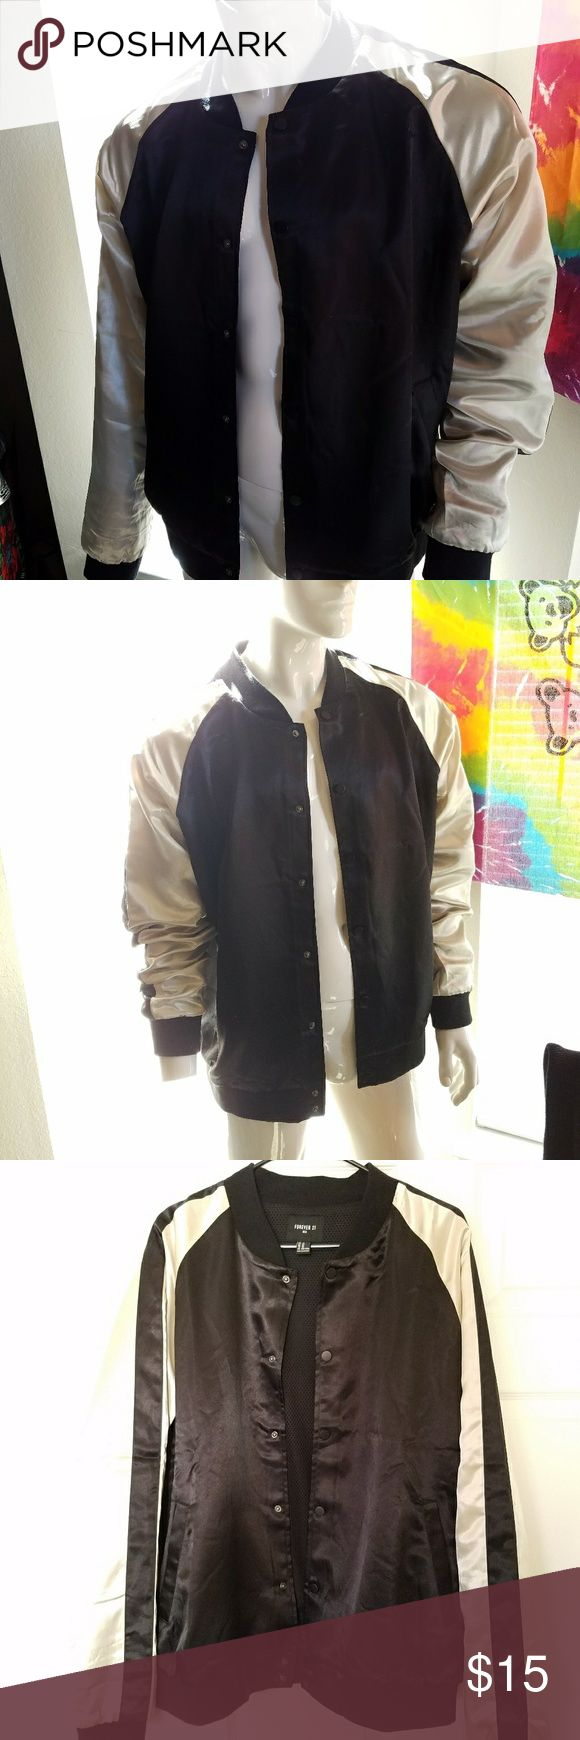 21Men Light track Jacket Light black and gold jacket with buttons 21men Jackets & Coats